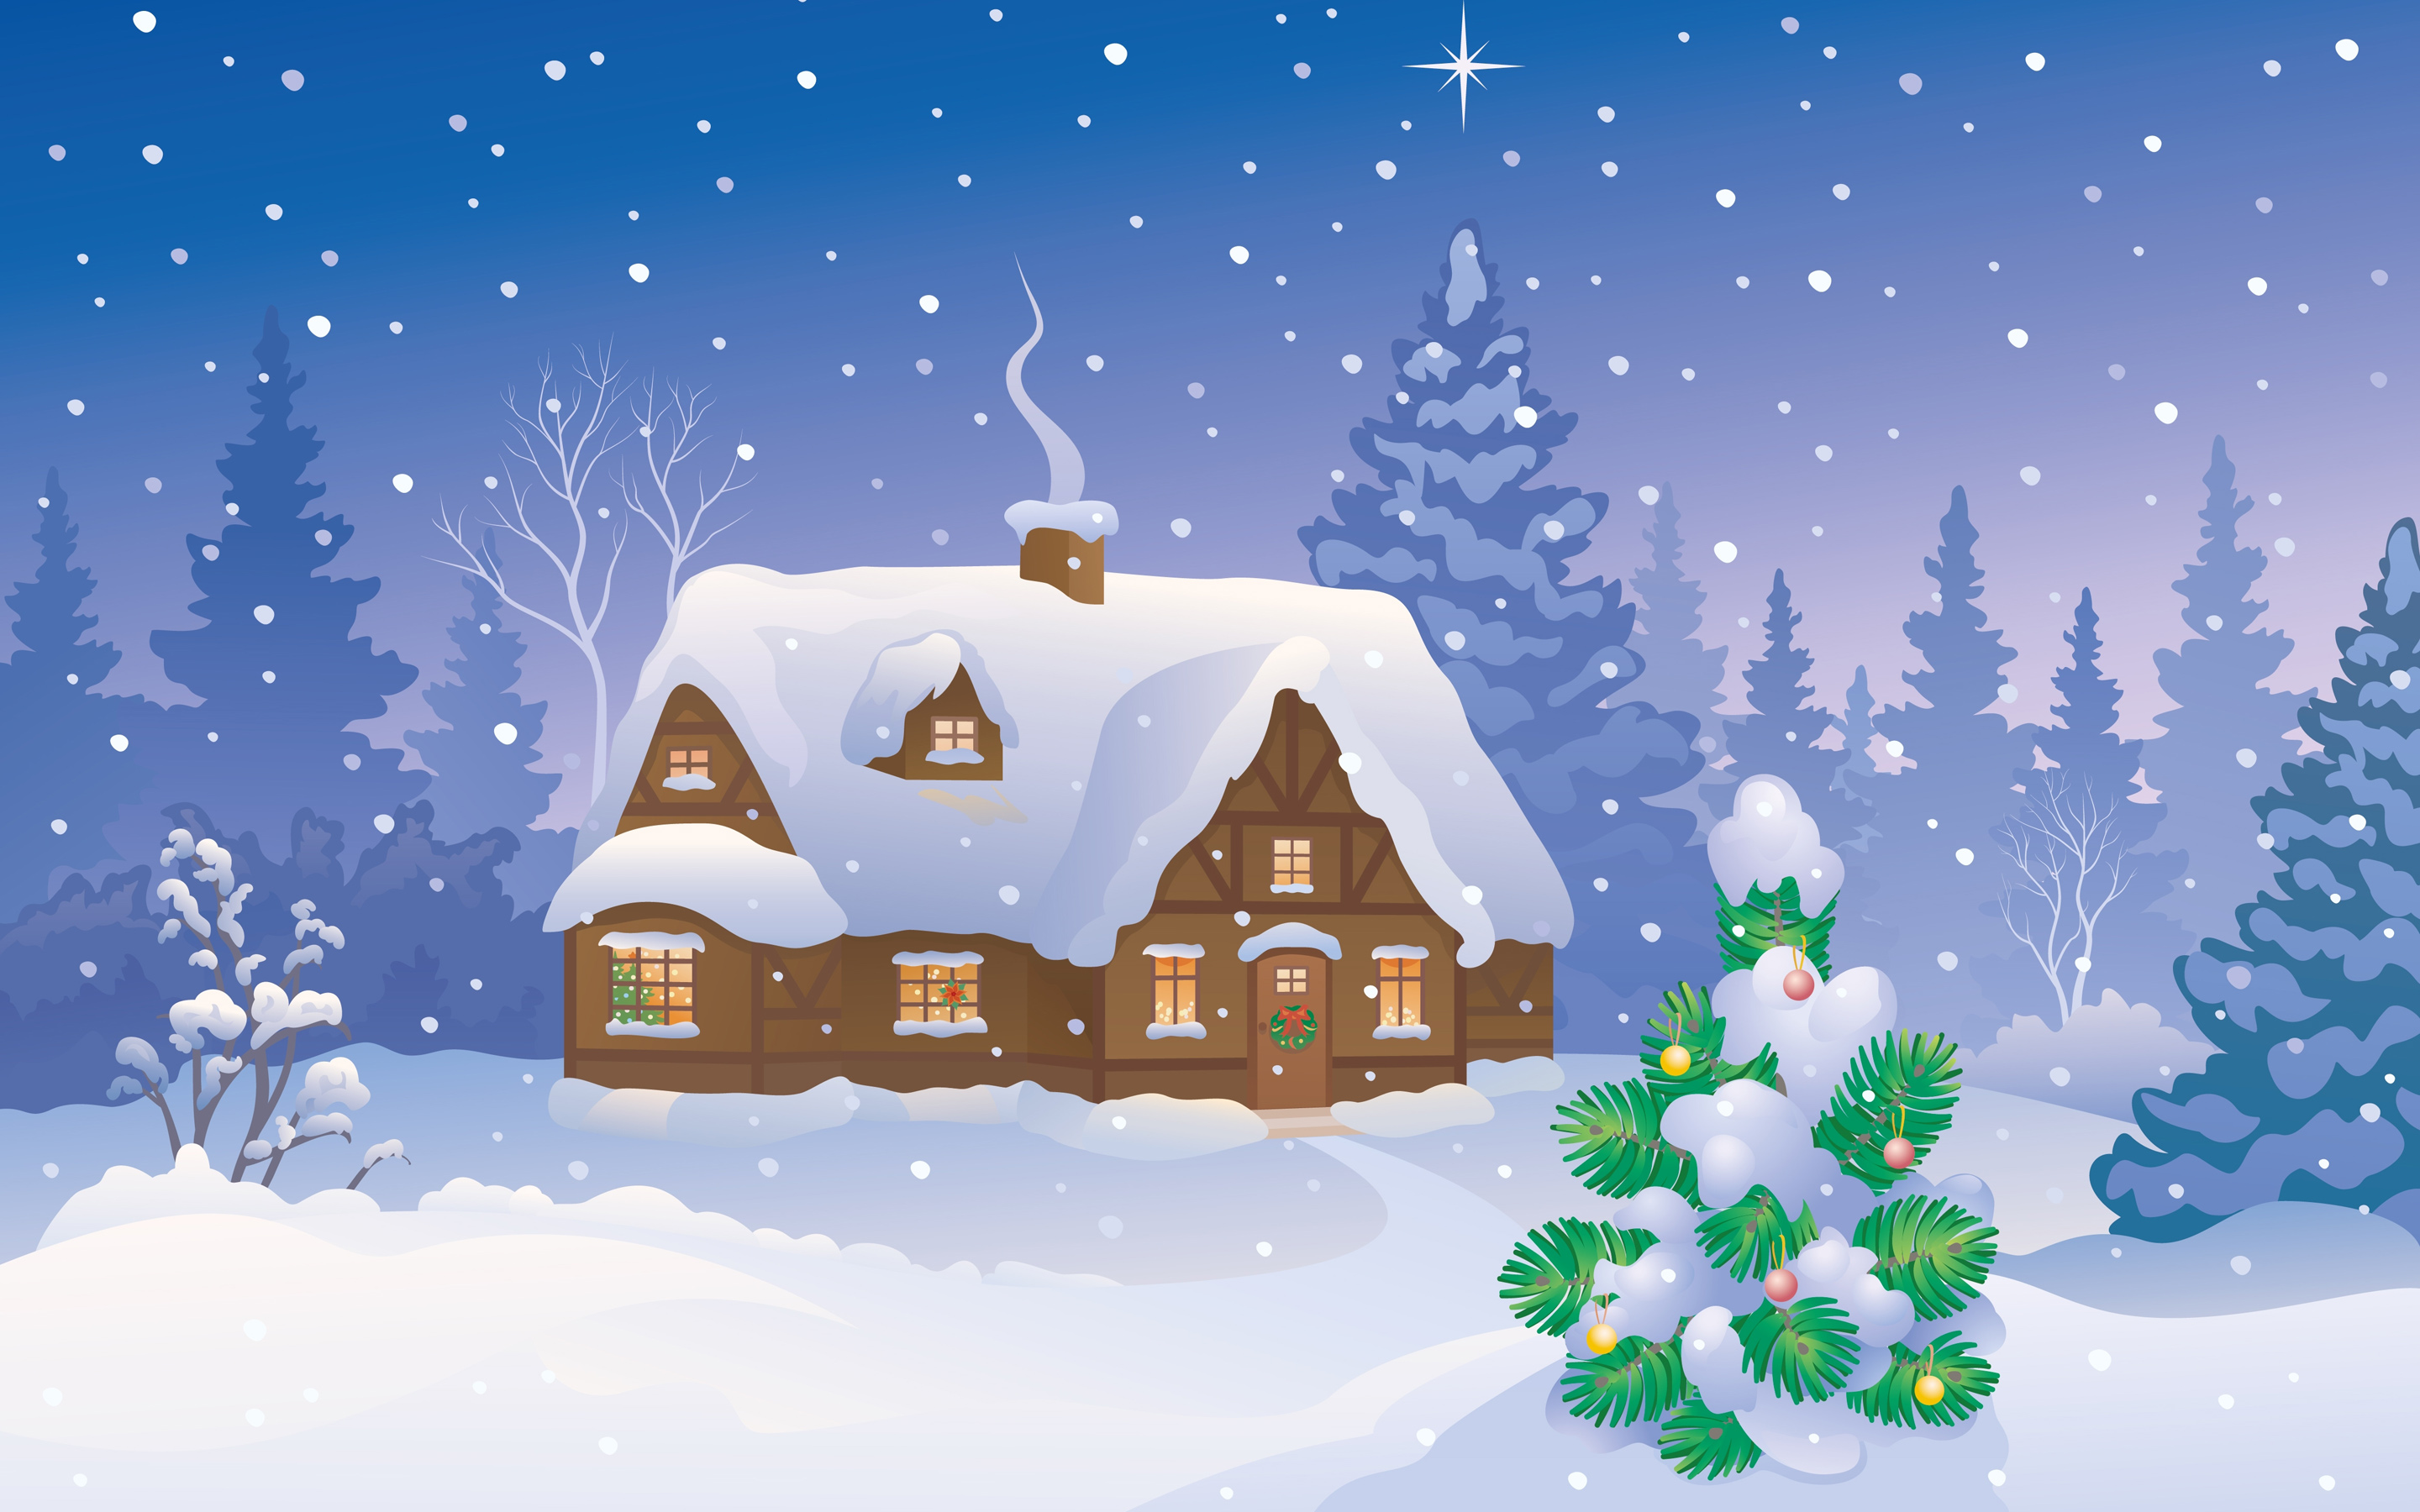 Merry Christmas Winter Home Wallpaper 2880x1800